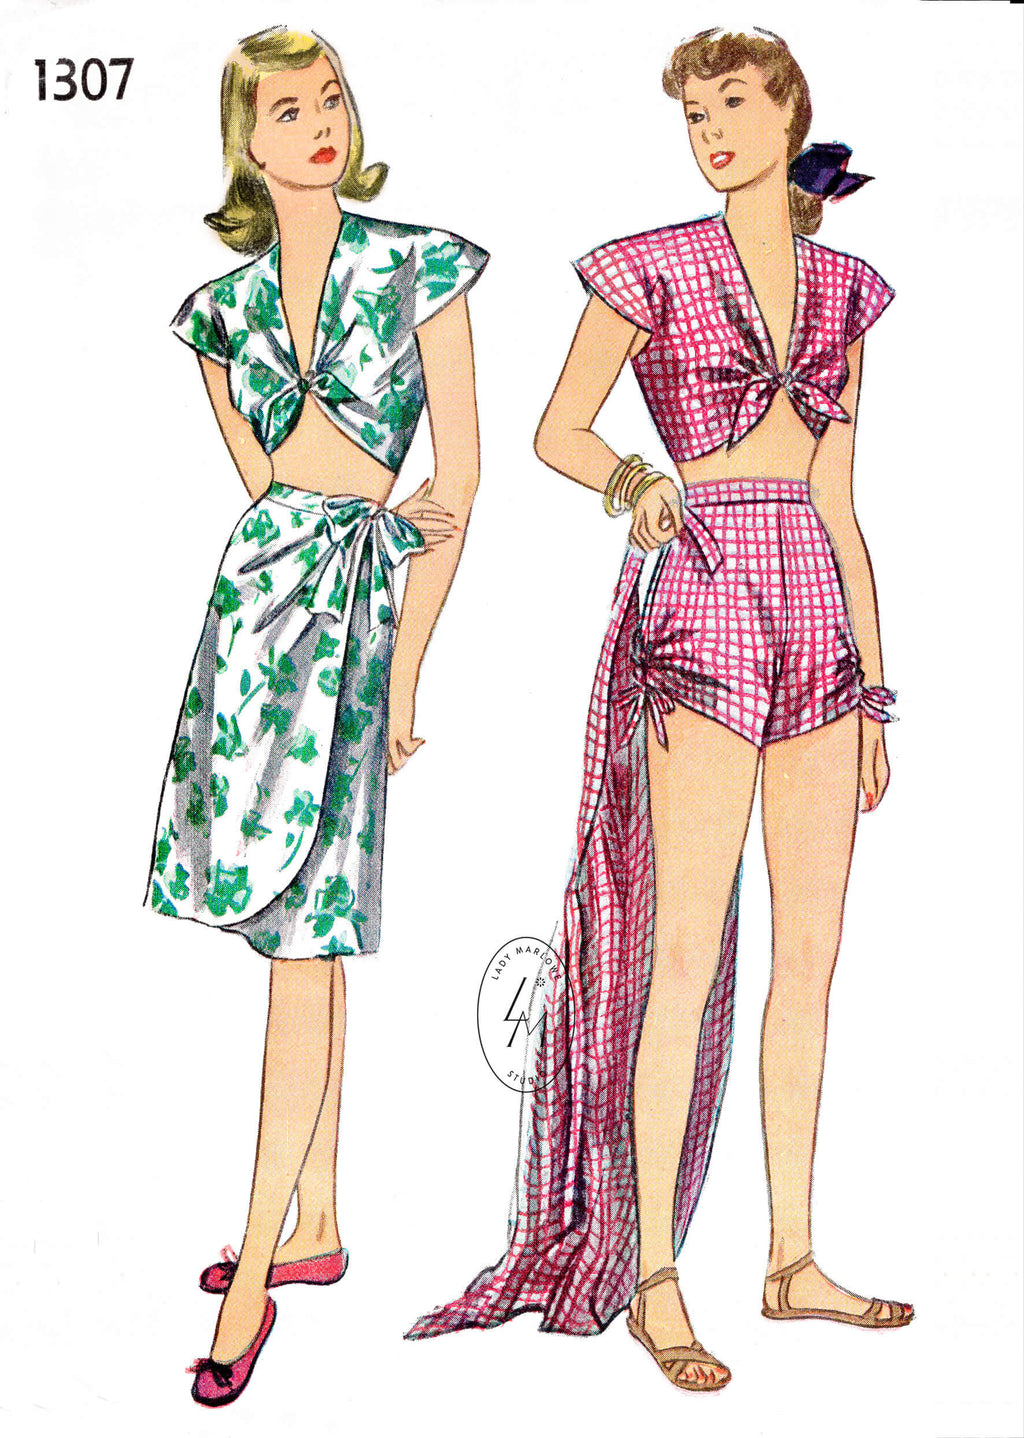 Simplicity 1307 1940s crop top, wrap skirt, high waisted shorts summer beachwear vintage sewing pattern reproduction